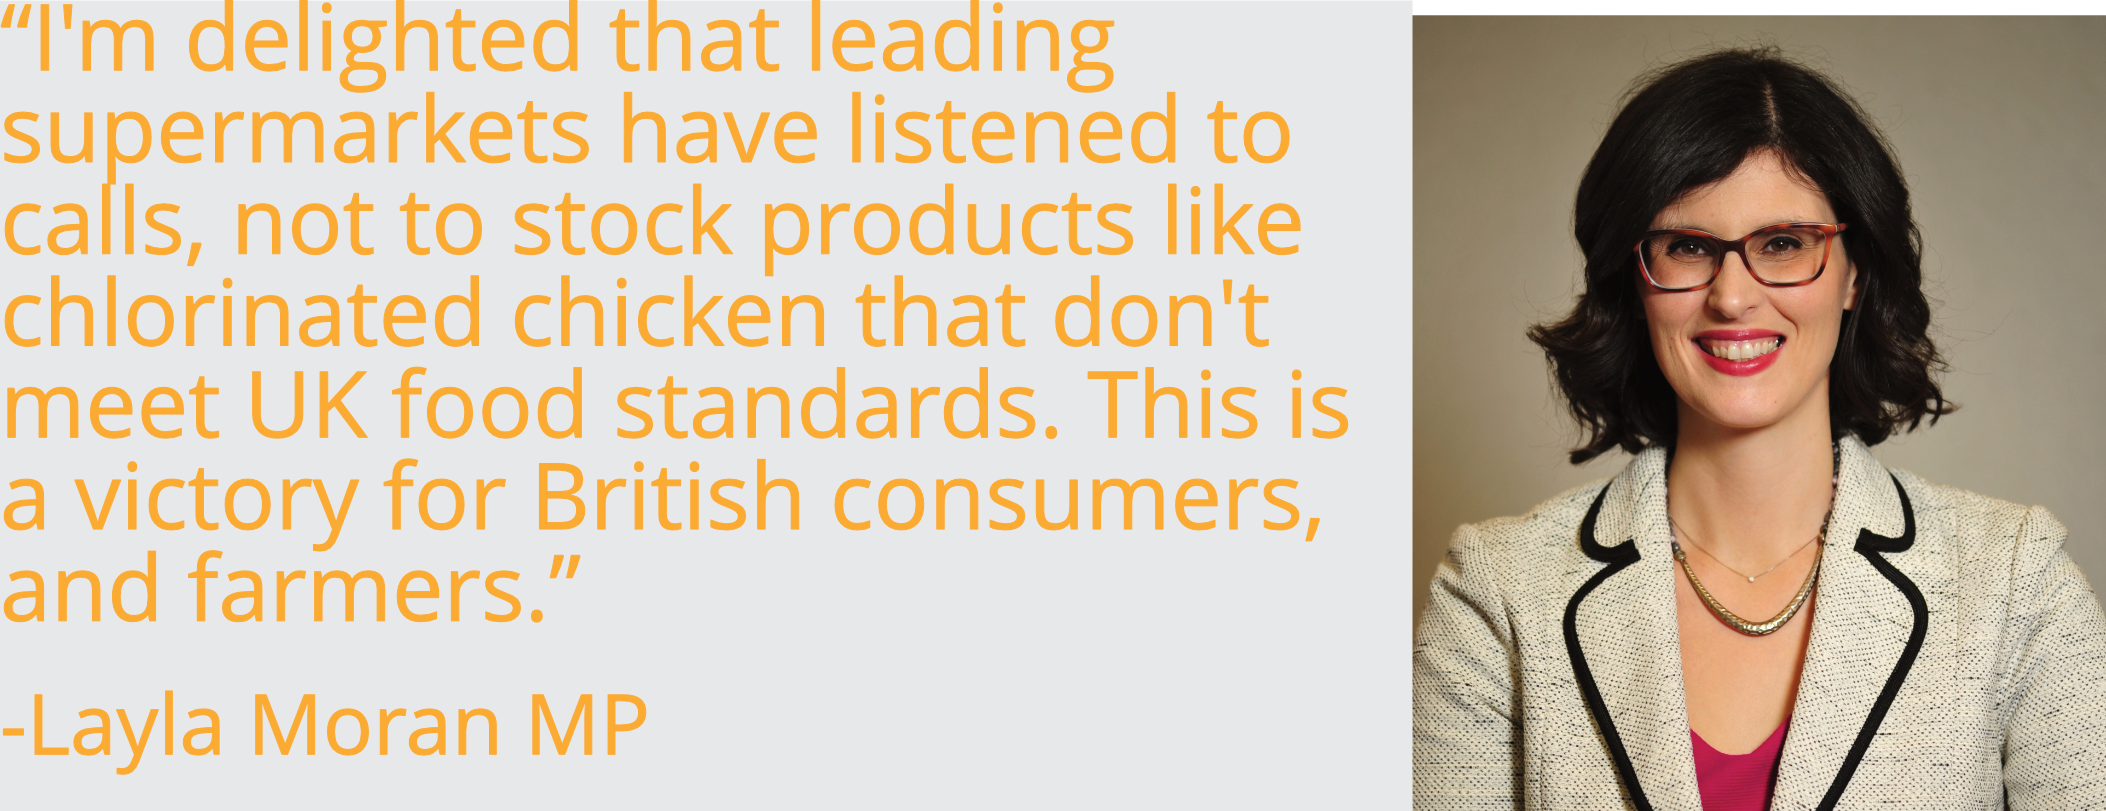 """I'm delighted that leading supermarkets have listened to calls, not to stock products like chlorinated chicken that don't meet UK food standards. This is a victory for British consumers, and farmers."